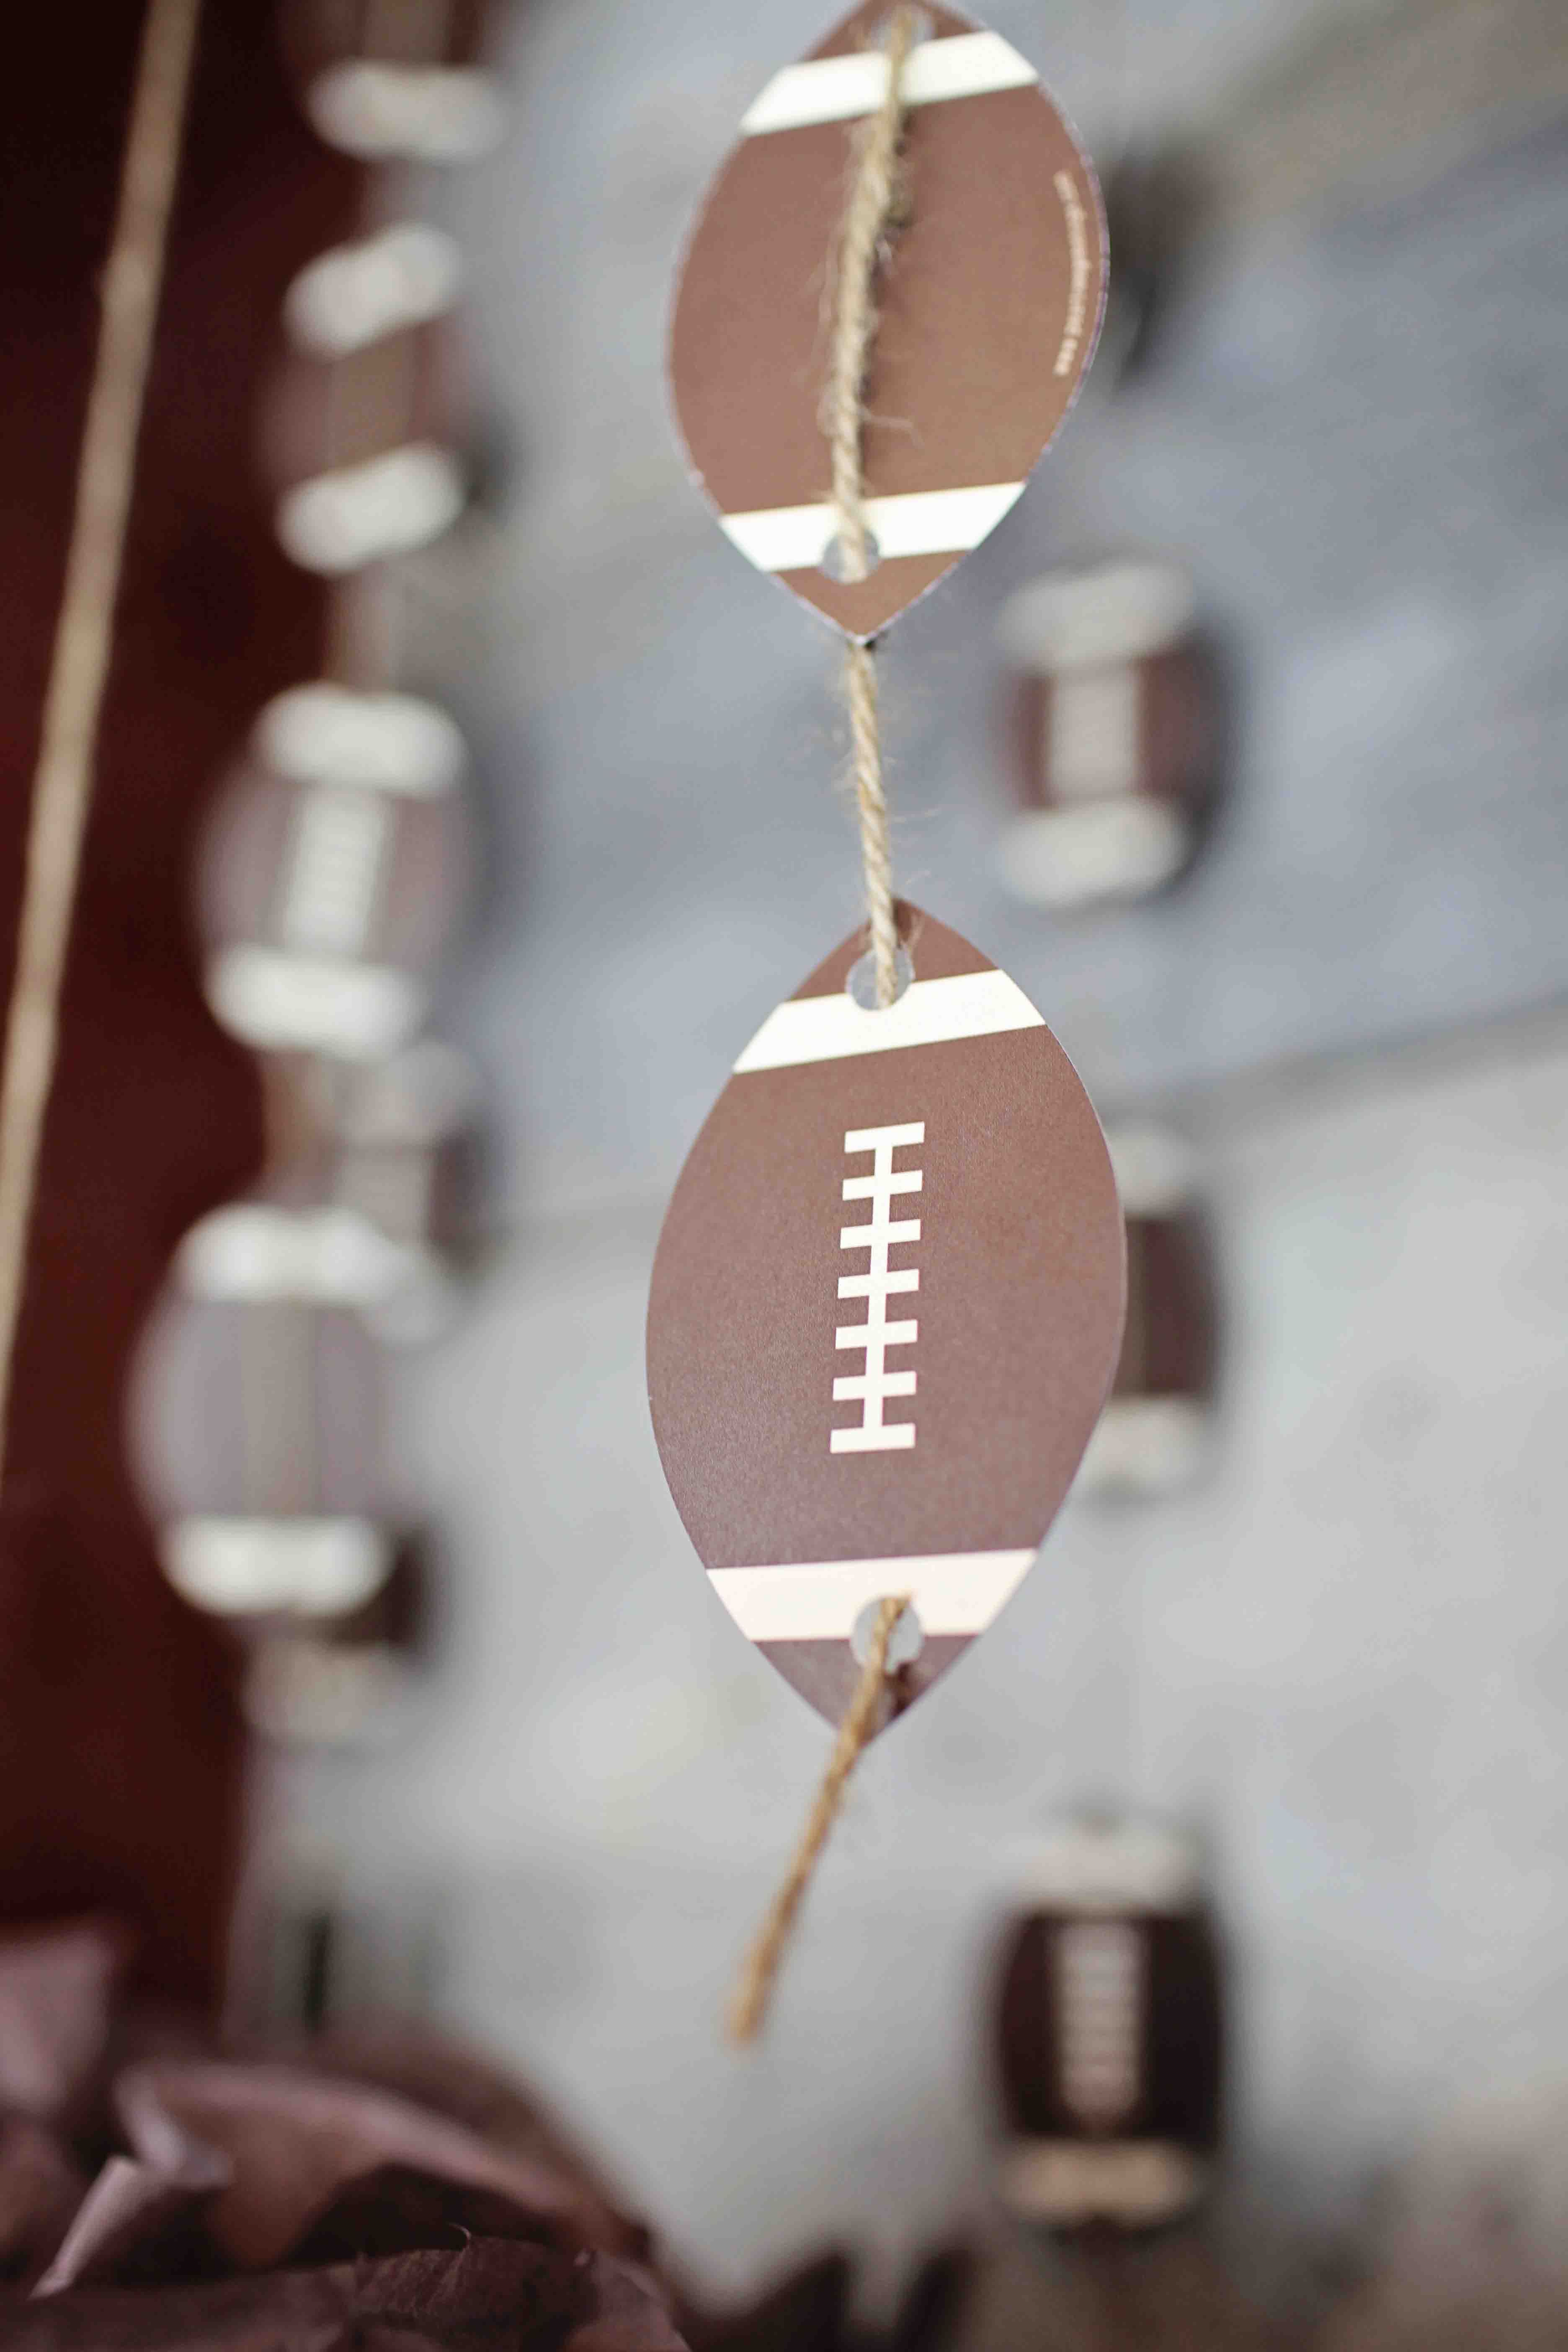 Volleyball Party Decorations All Star Graduation Party Ideas Football Garland Made From Our